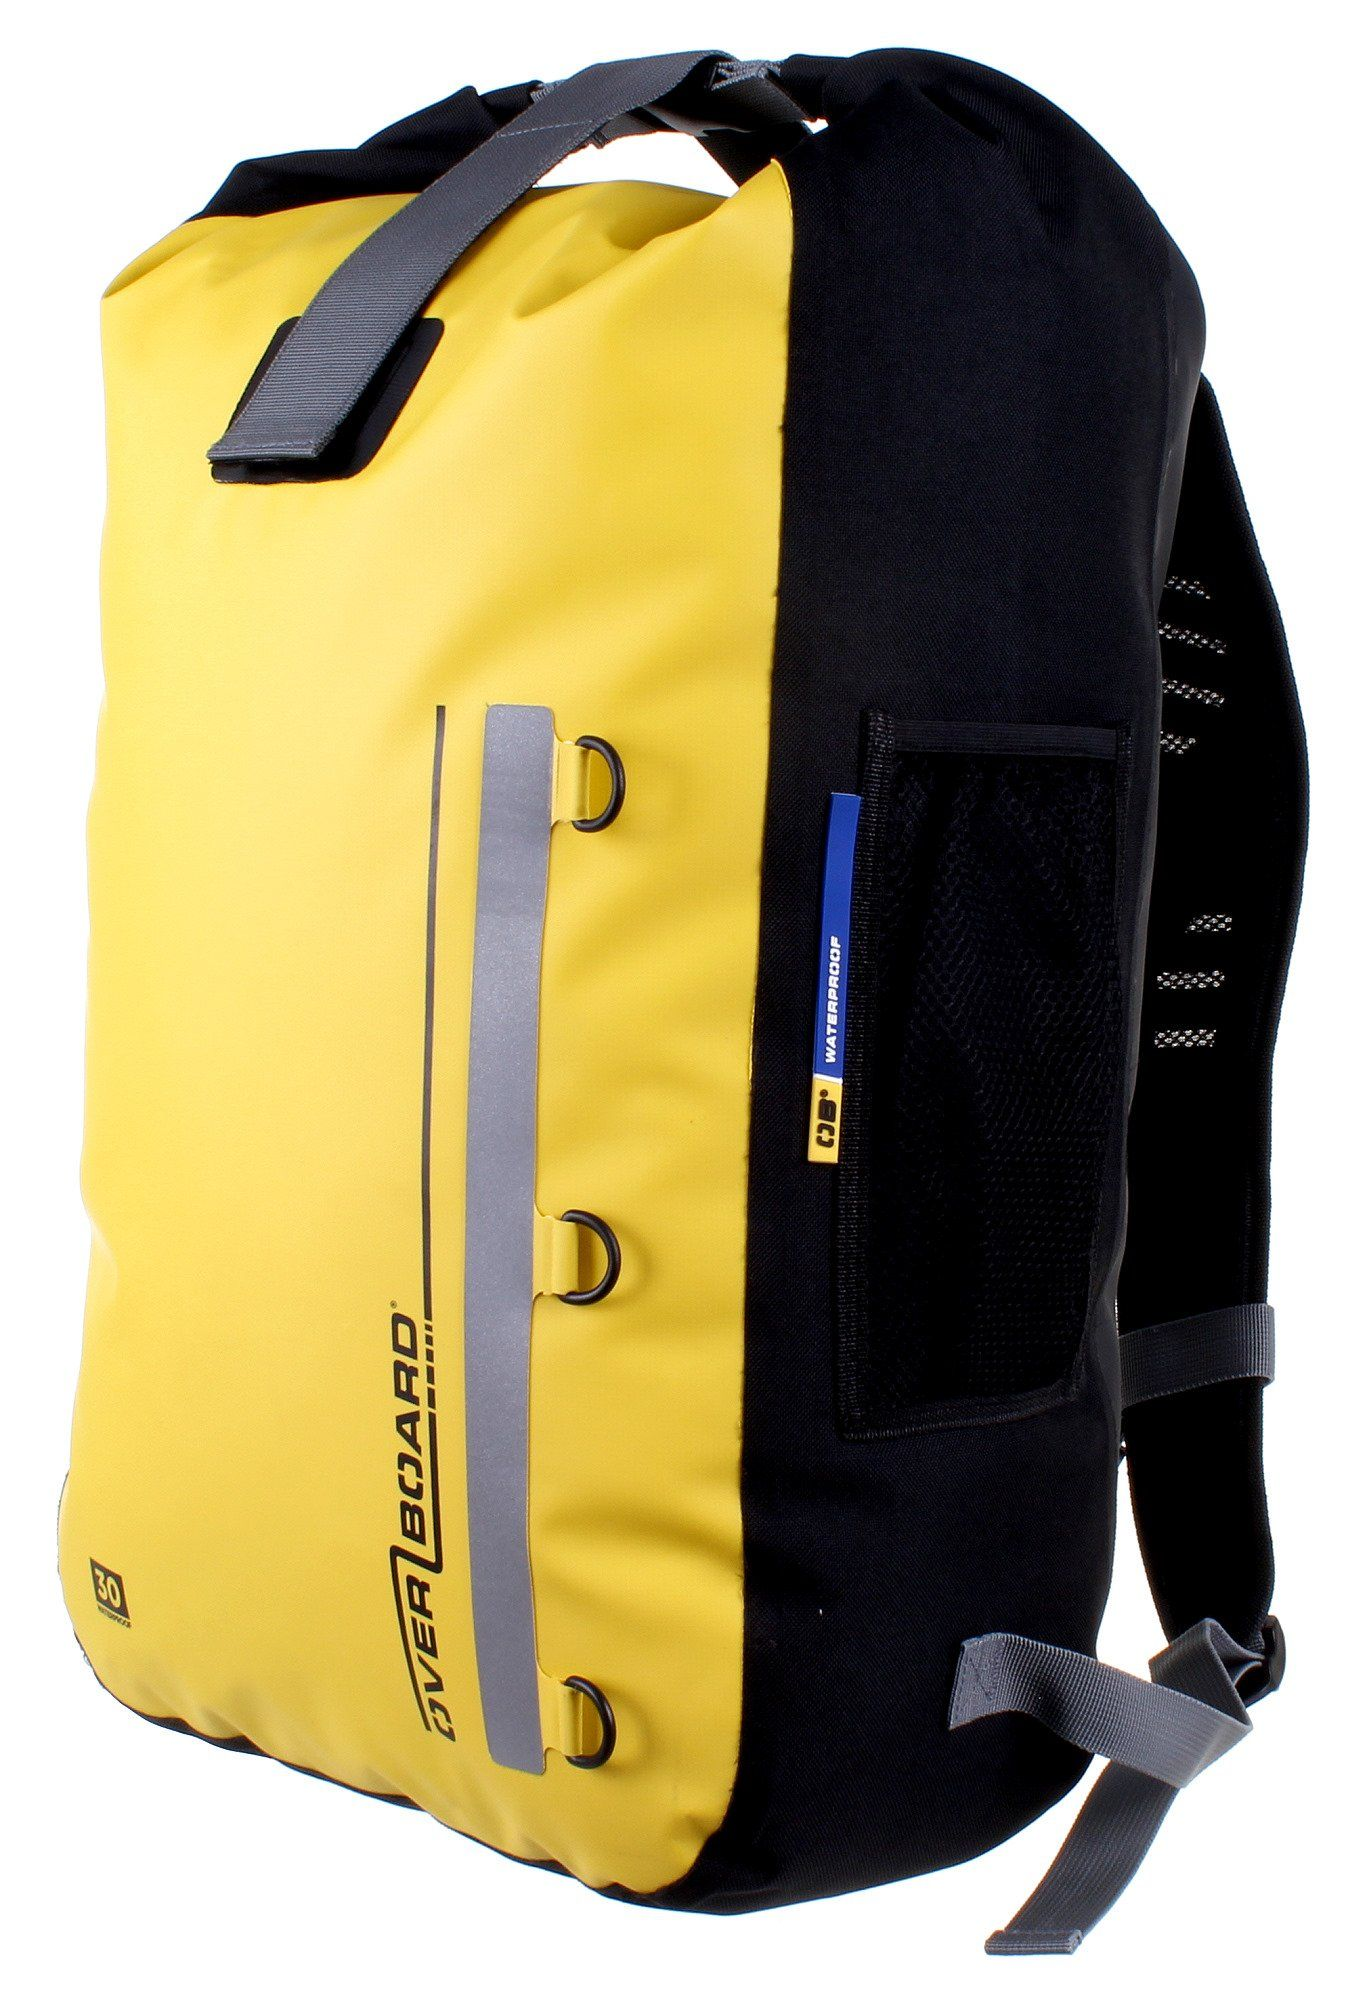 OverBoard Waterproof Classic Backpack, Yellow, 30-Liter | Sports ...